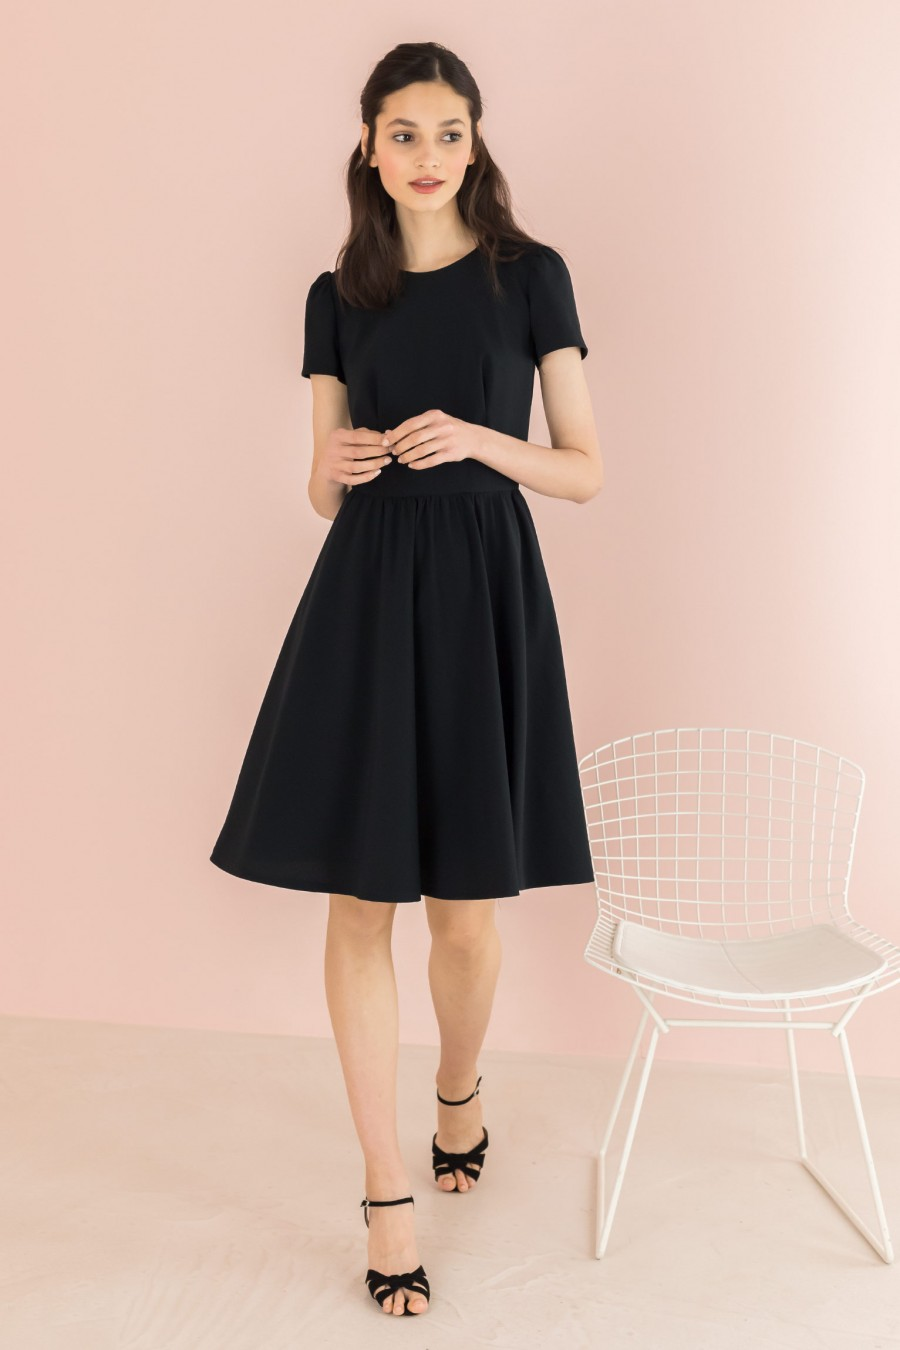 dress with gathered skirt